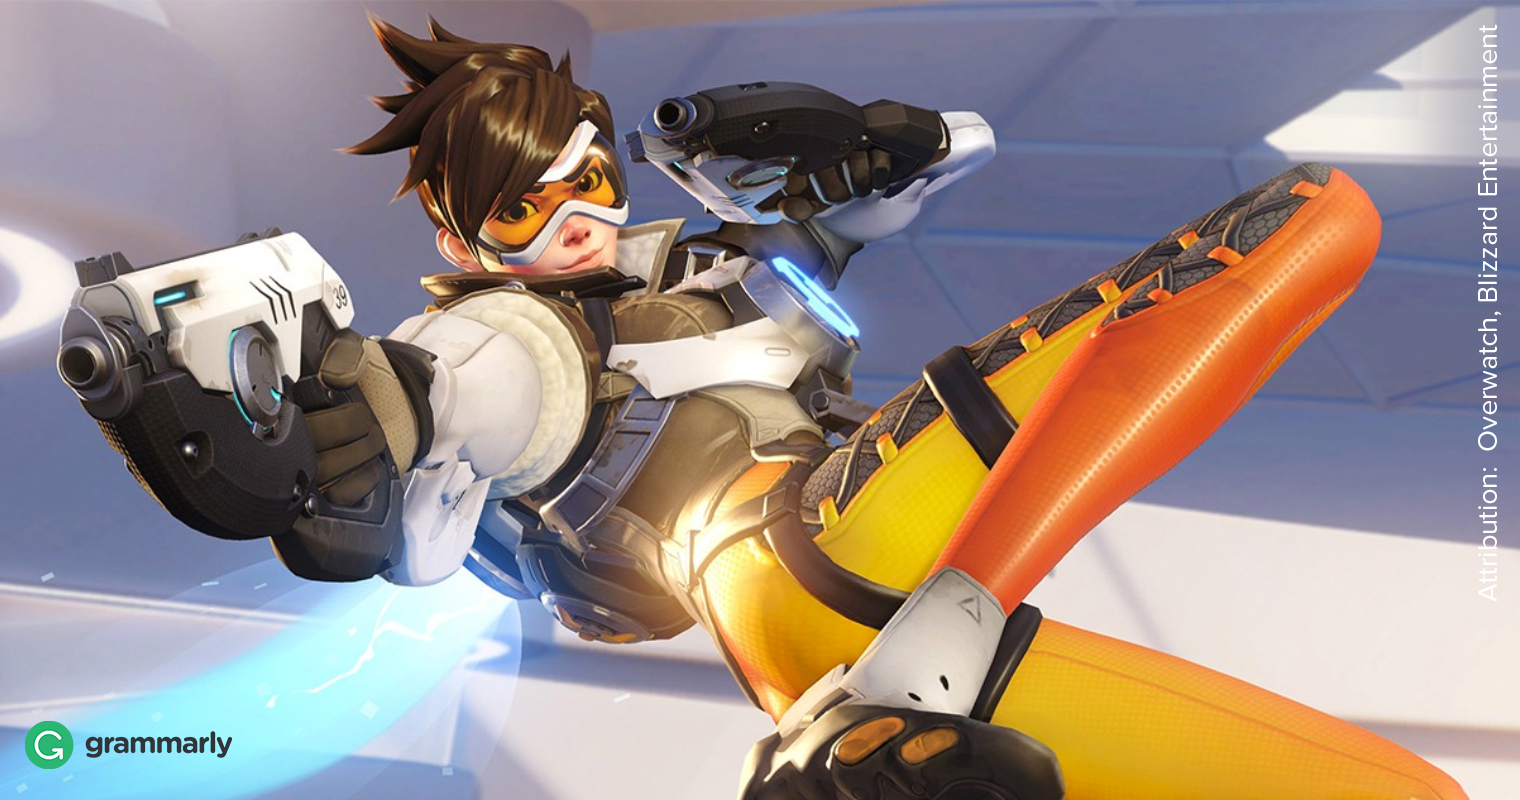 5 Overwatch Teamwork Tactics You Can Take to Work image